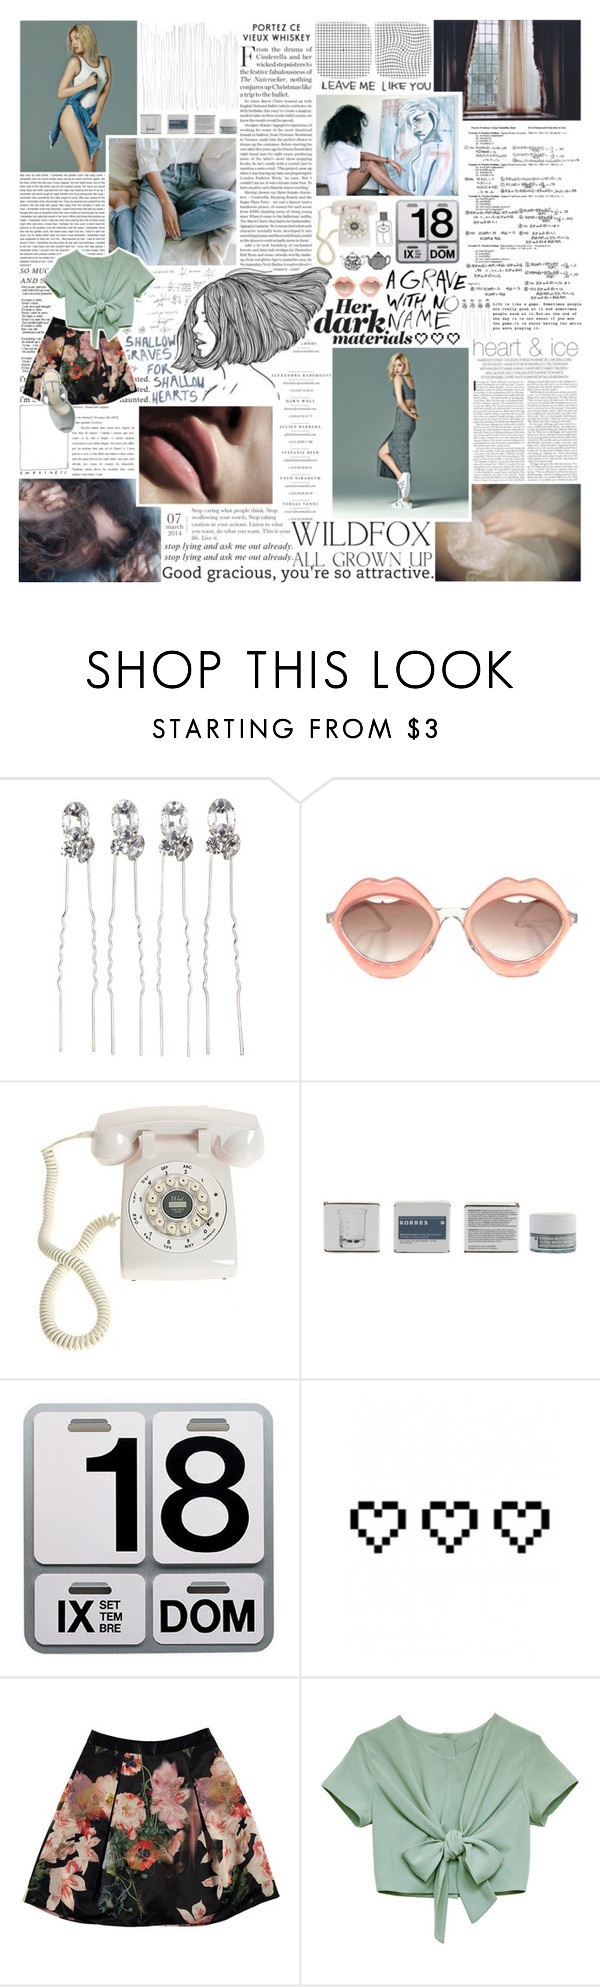 """now i'm so high."" by nevi ❤ liked on Polyvore featuring Chandelier, RETROSPECS, Crosley, Korres, Wildfox, Danese, Retrò and Ted Baker"